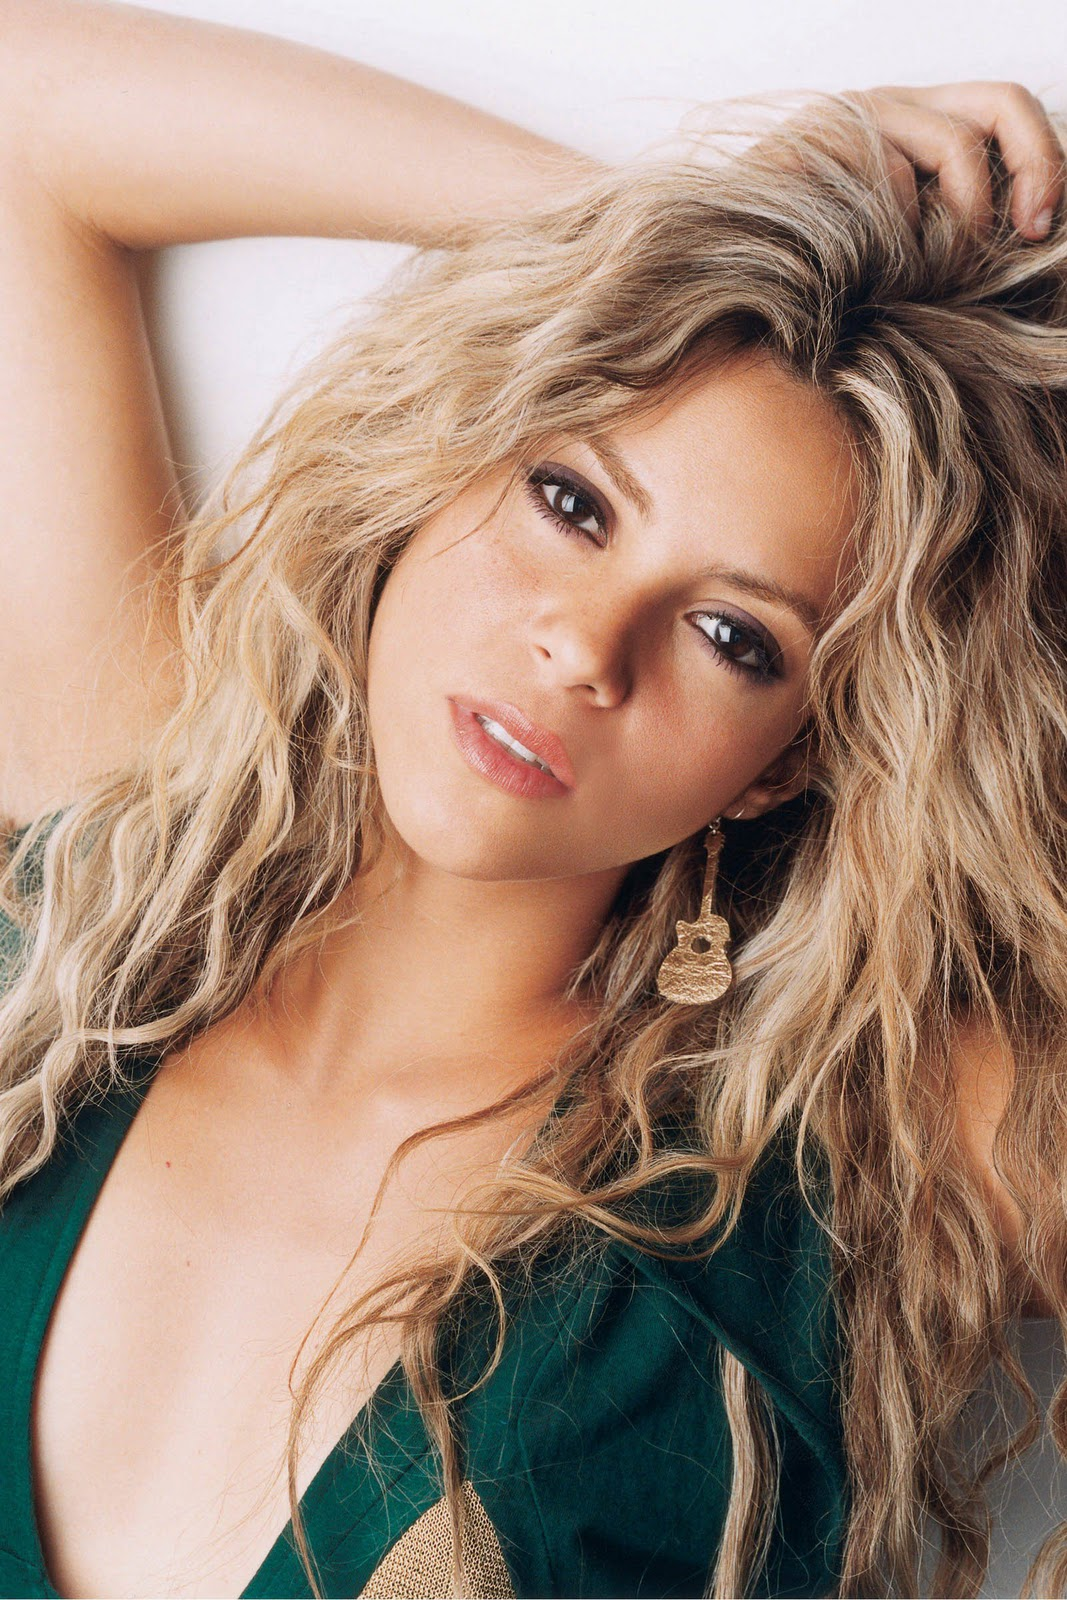 Shakira Hot Pics In Bikini | Hot Celebrity Photos Pictures ... Shakira